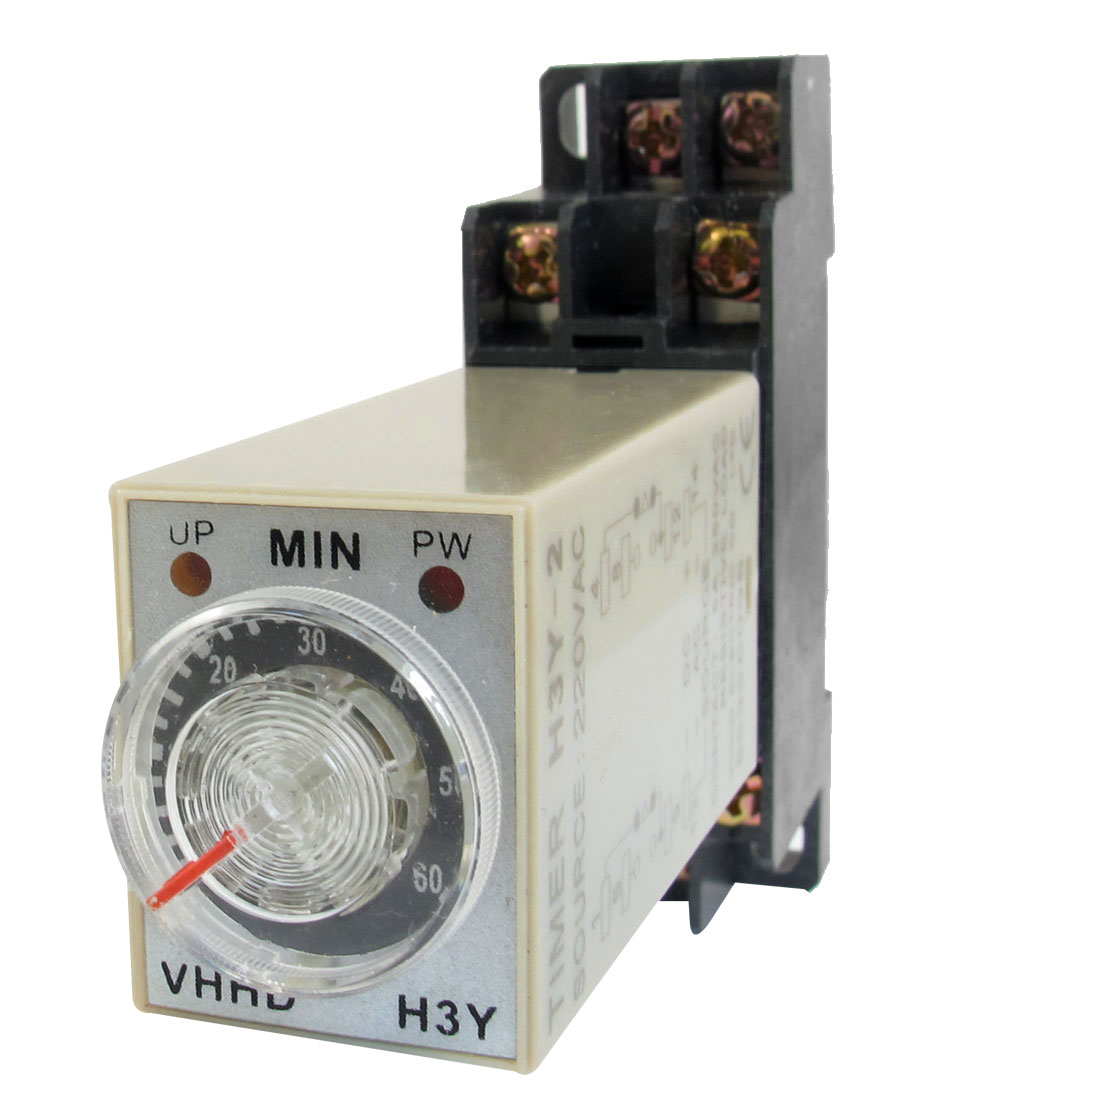 AC 220V 60Min 0-60 Minute Delay Timer Time Relay H3Y-2 + 8 Pin DIN Rail Socket